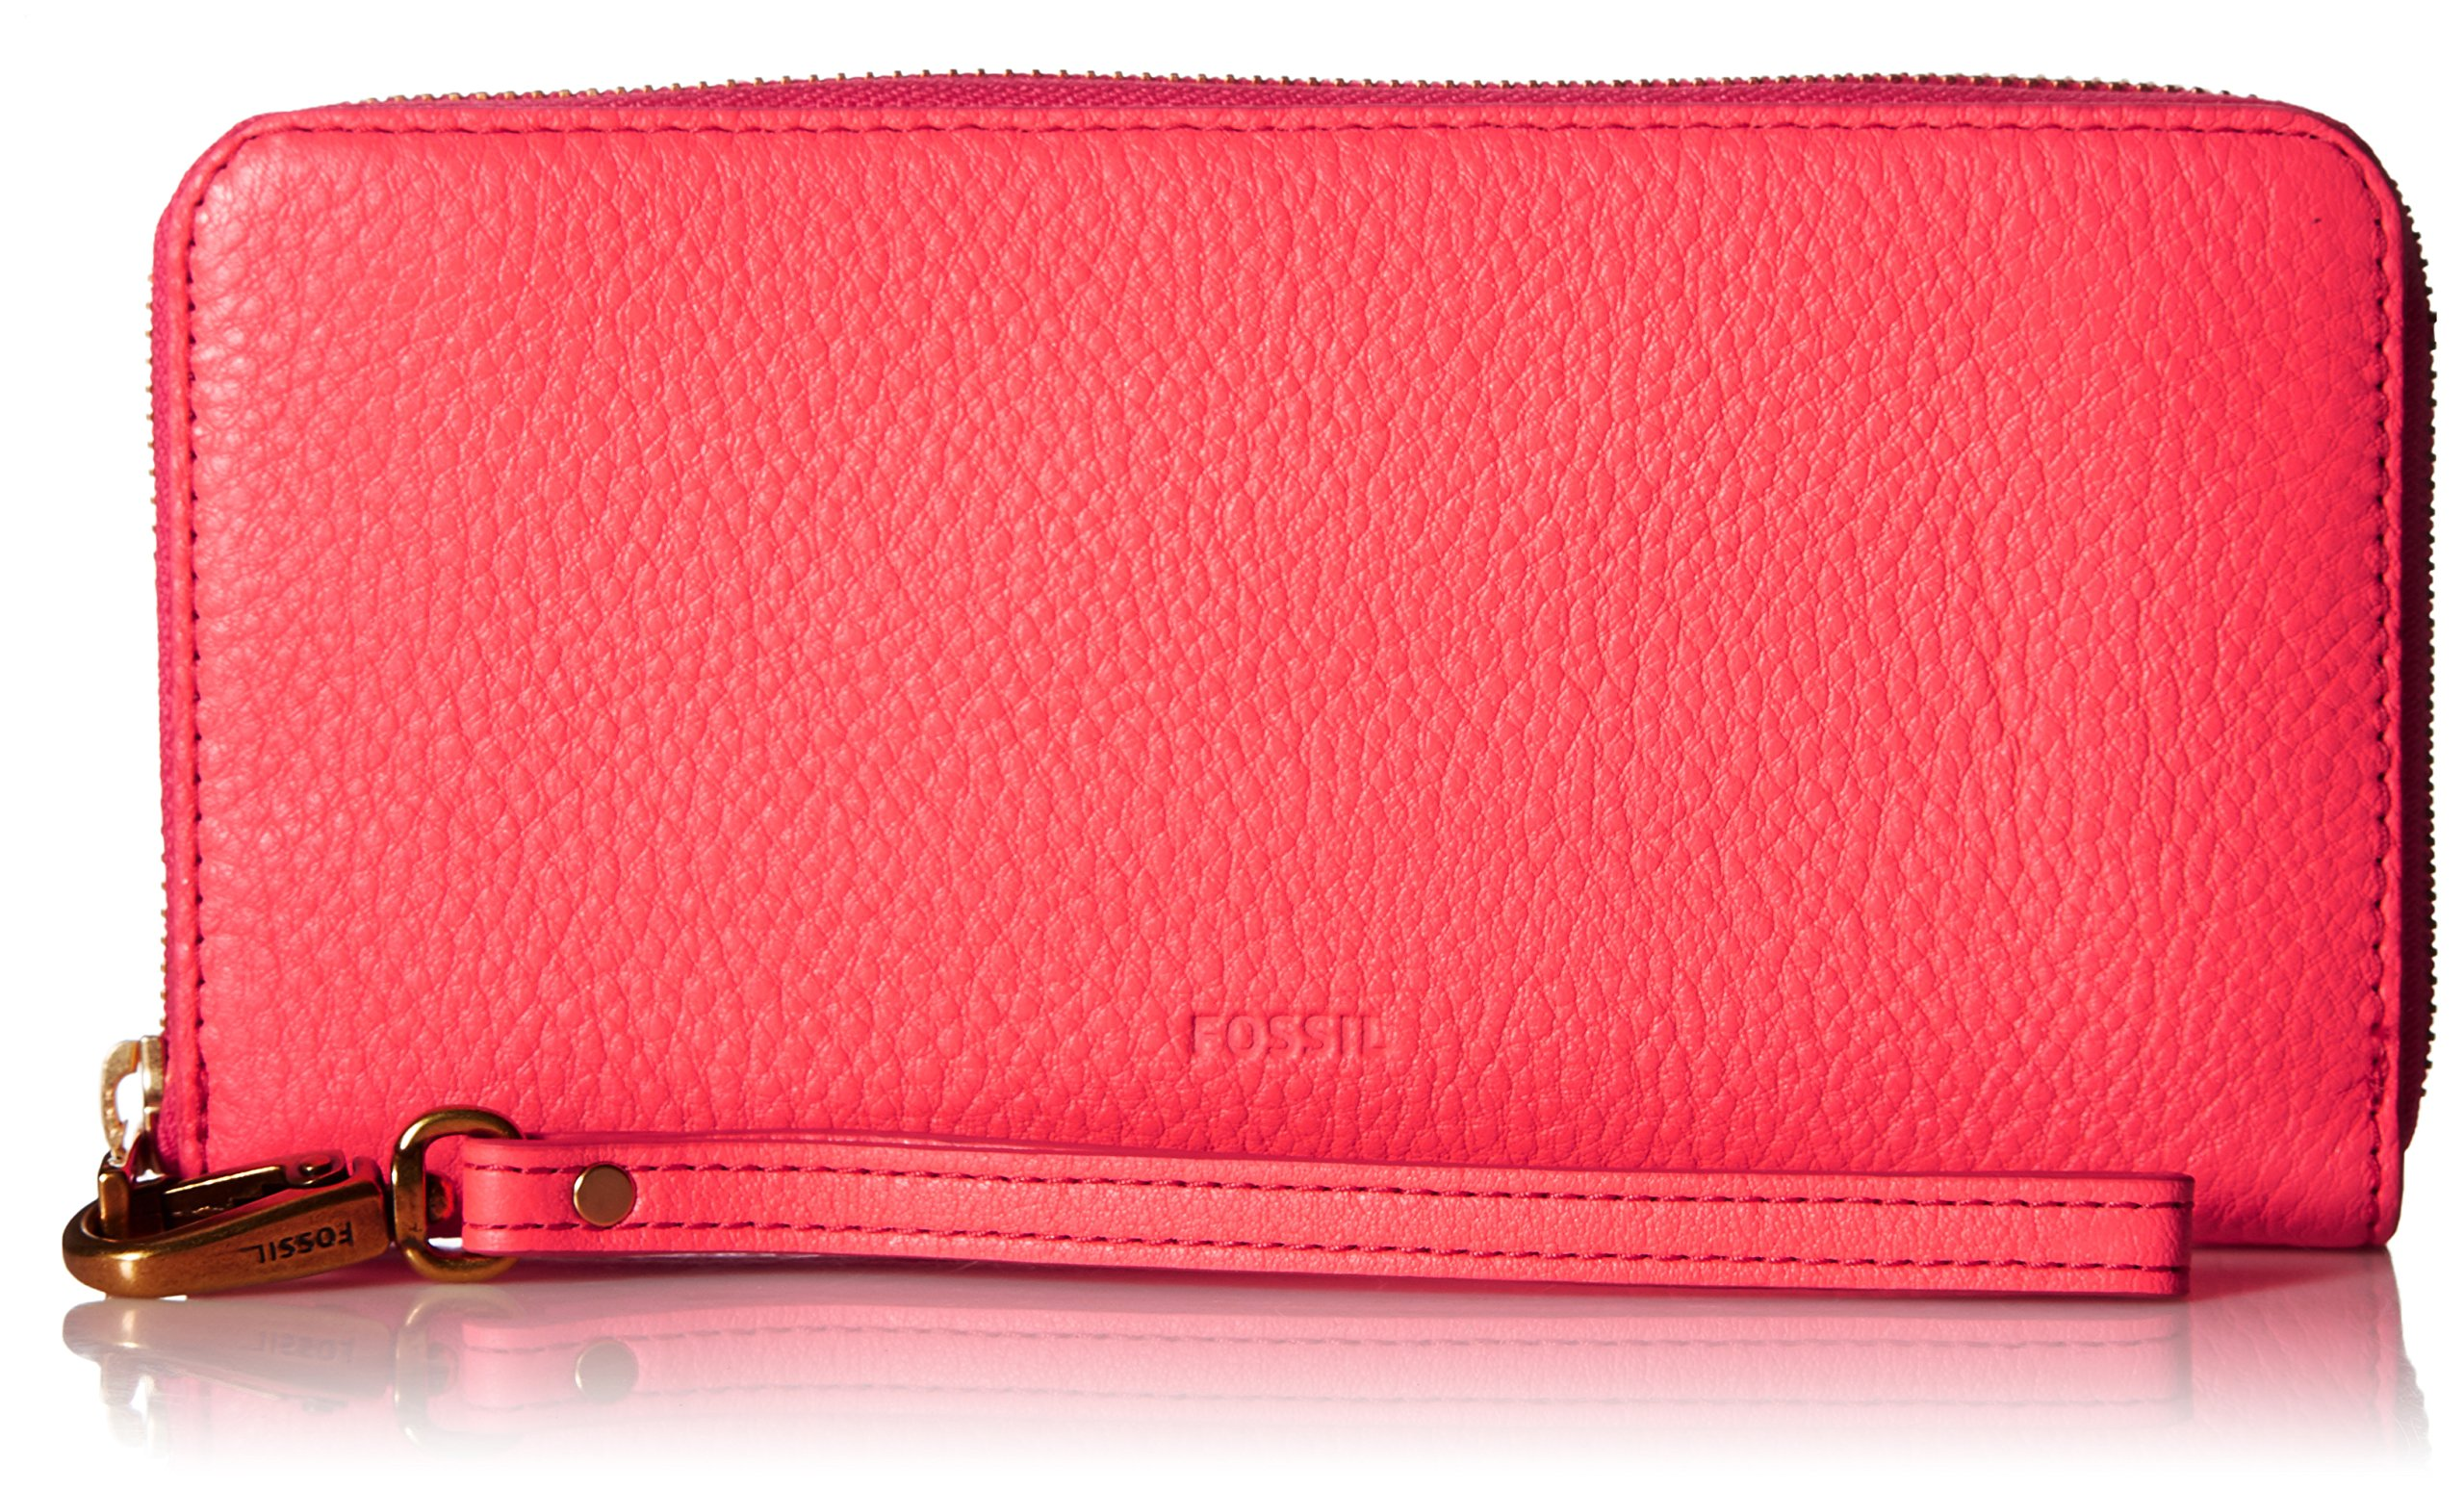 6b37ae8fb280 Fossil Emma Large Zip Wallet. Product main image